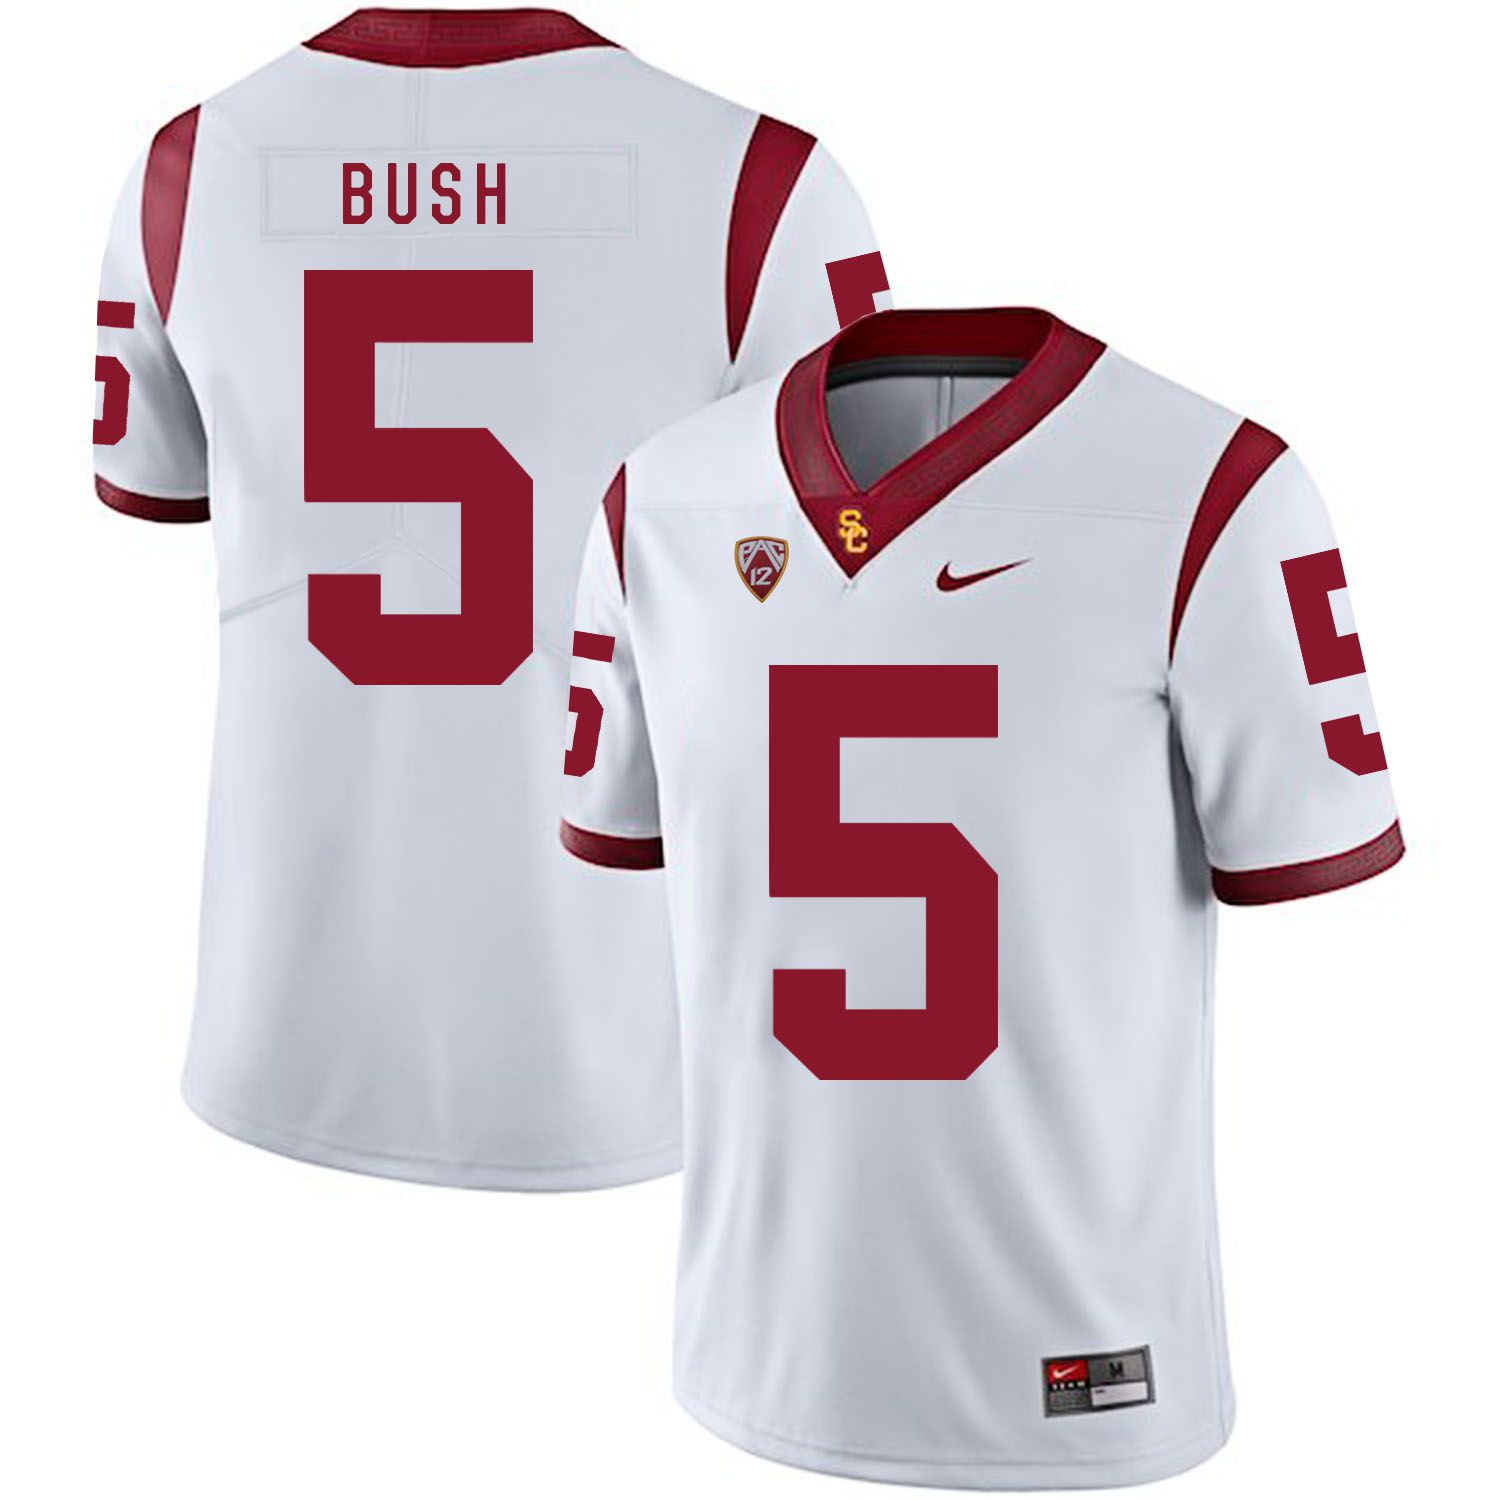 Men USC Trojans 5 Bush White Customized NCAA Jerseys